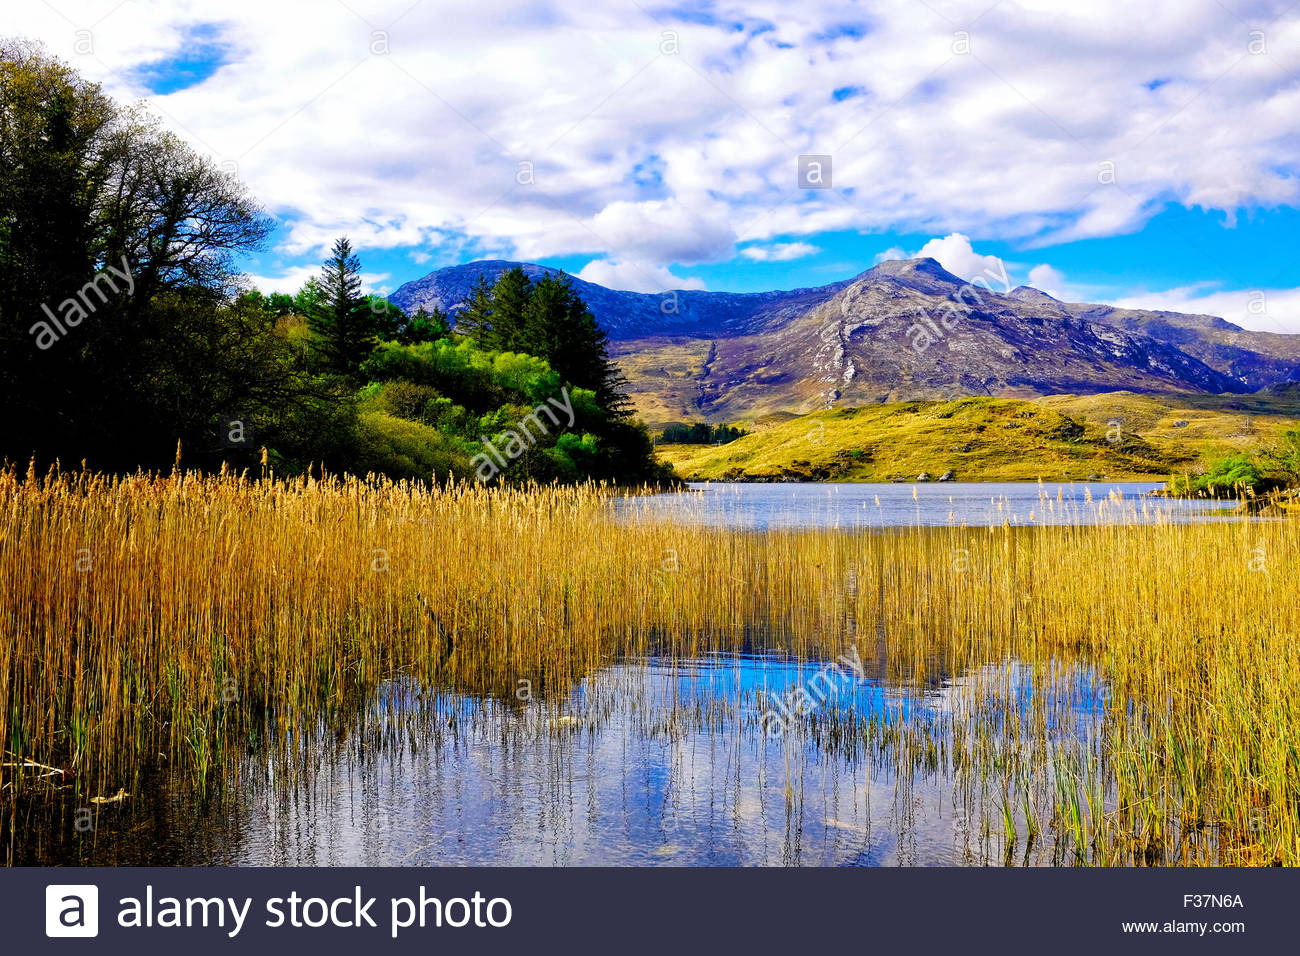 A view of Derryclare Lough, Connemara, Ireland - Stock Image